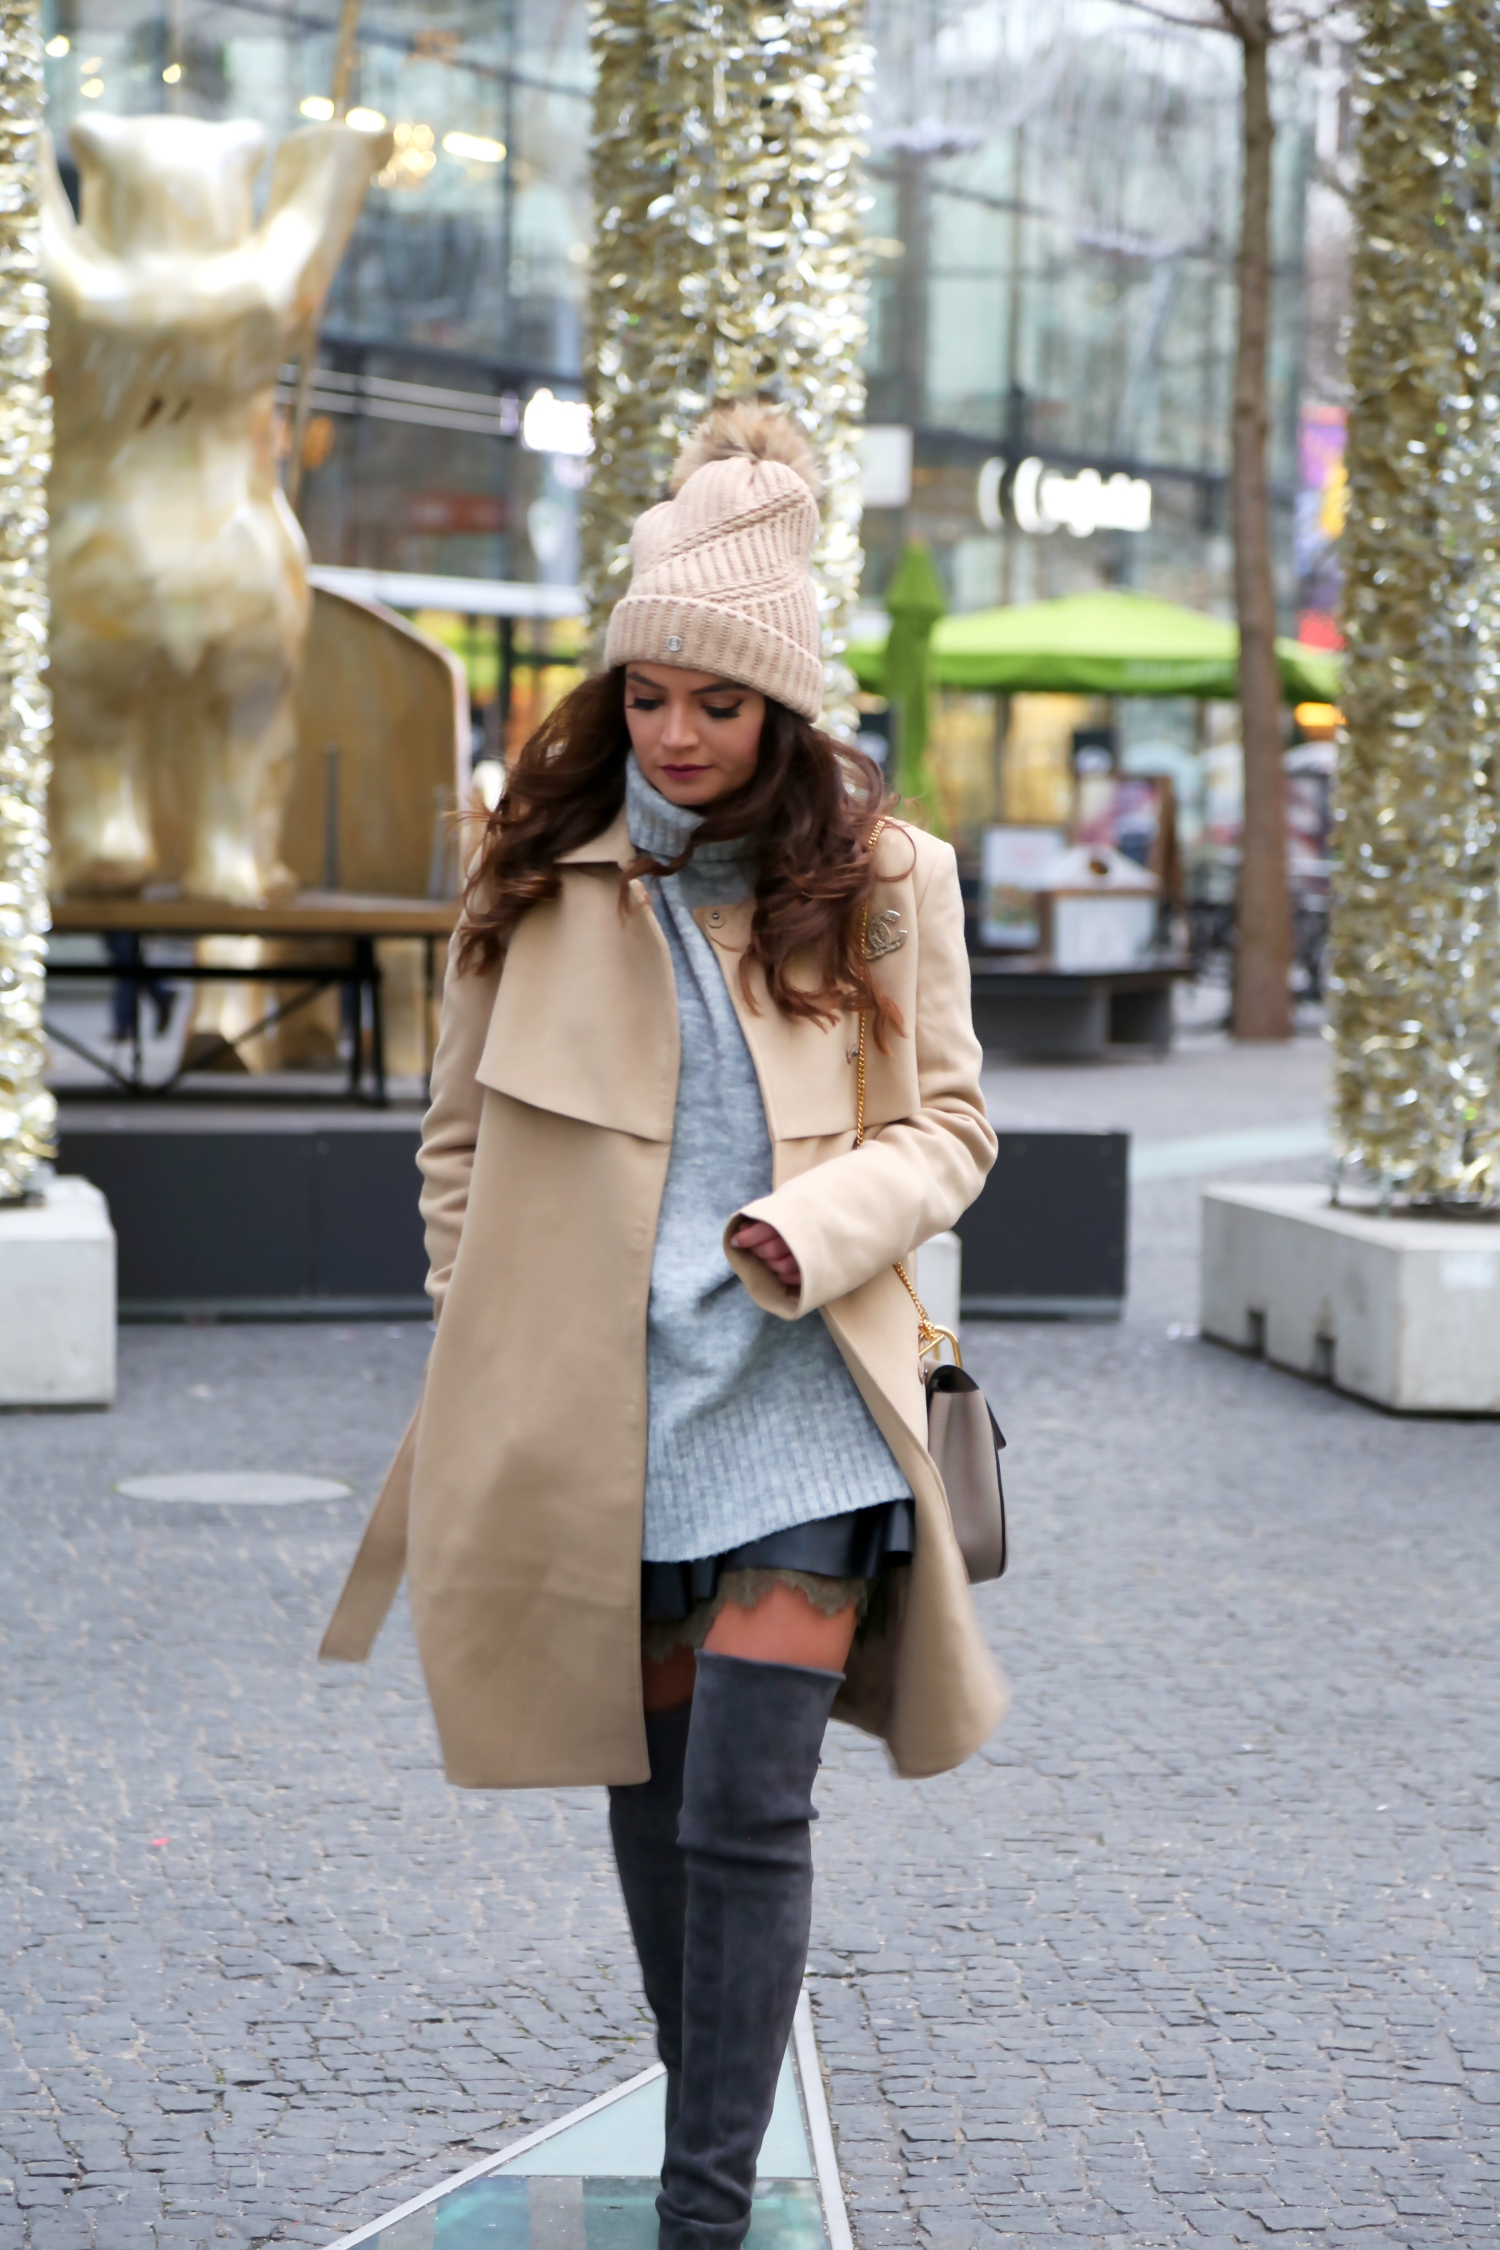 outfit-mbfwb-look-winter-edited-sweater-camel-coat-weitzman-overknees